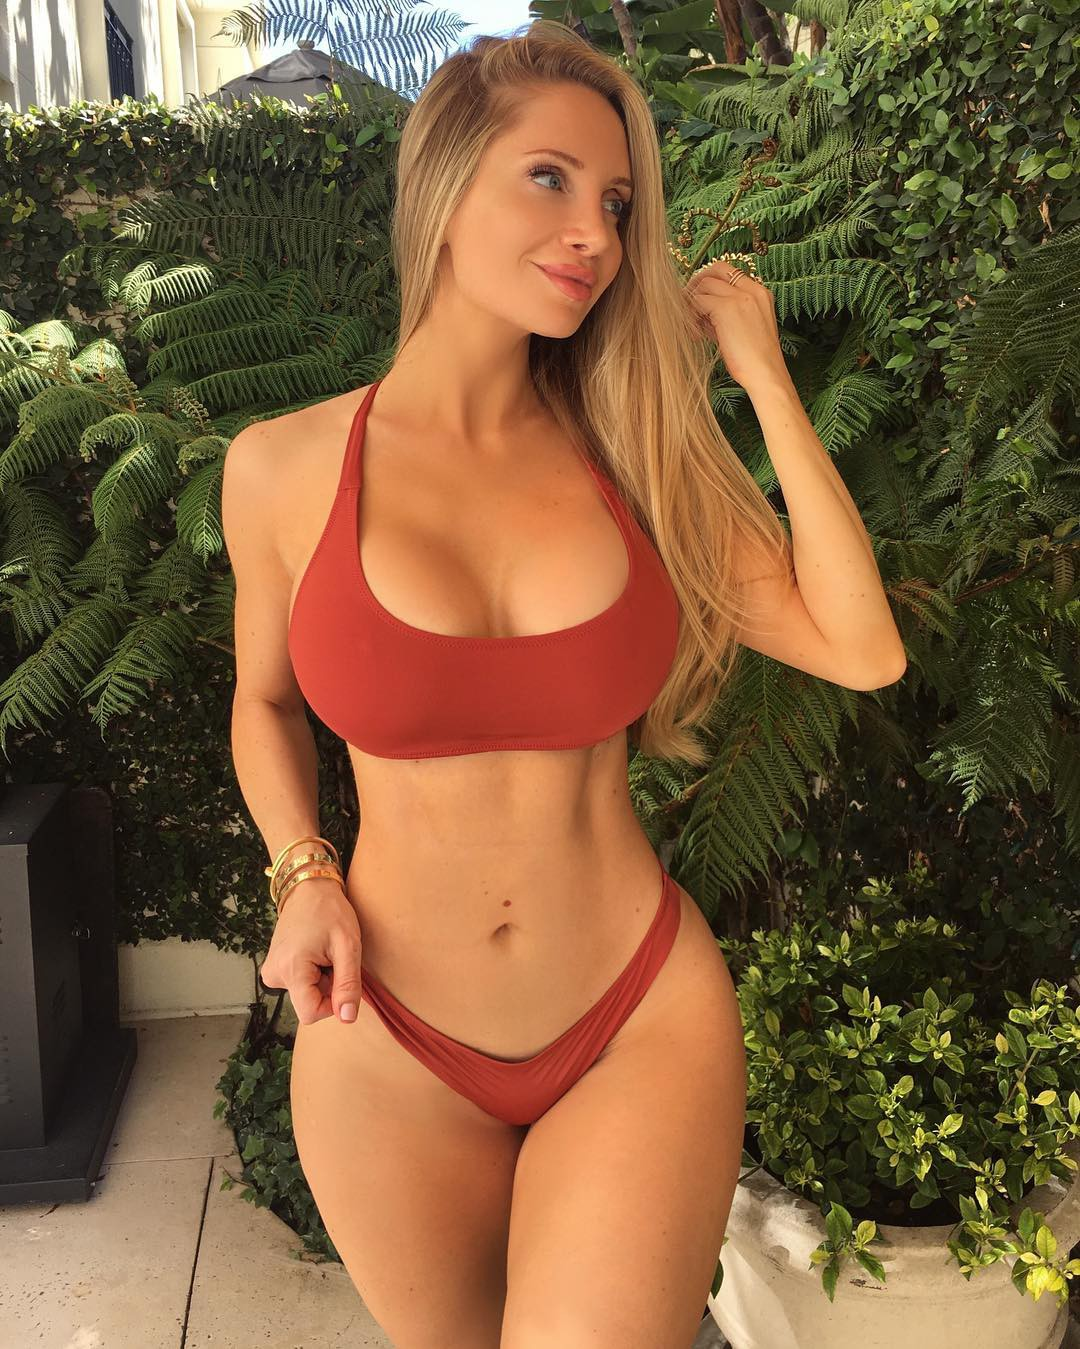 Casual outfit ideas for amanda elise lee, Physical fitness